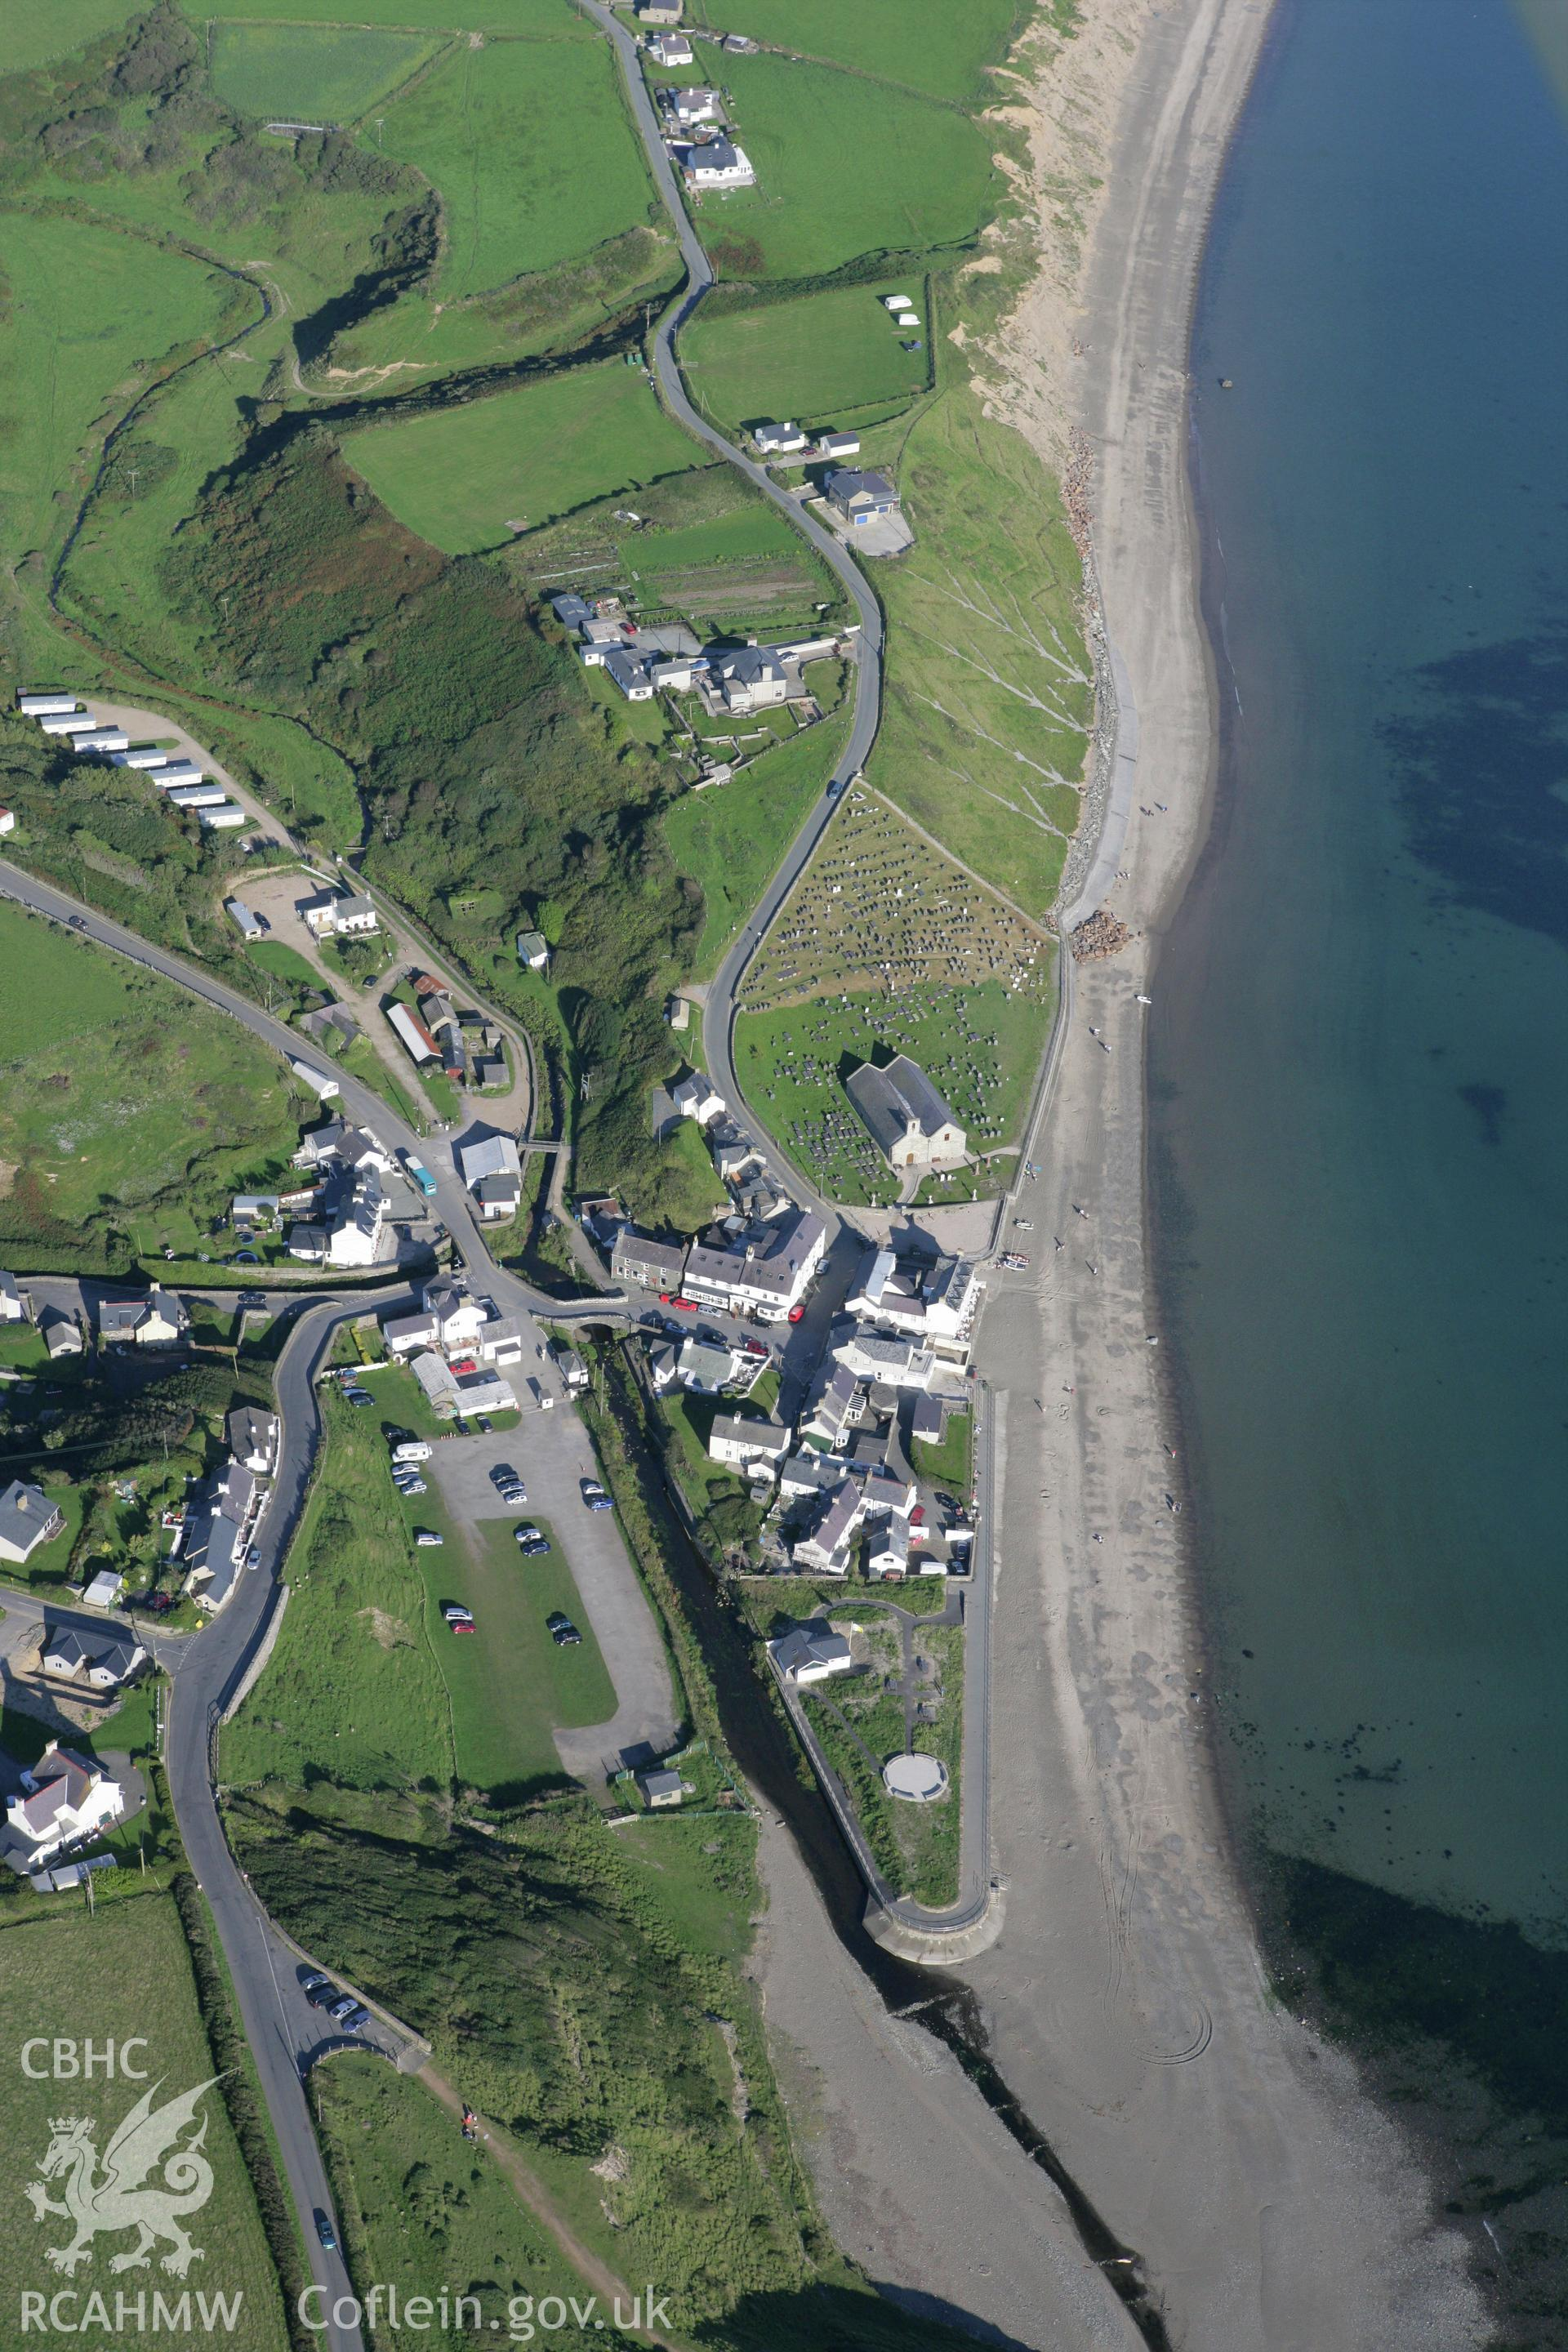 RCAHMW colour oblique aerial photograph of Aberdaron. Taken on 06 September 2007 by Toby Driver